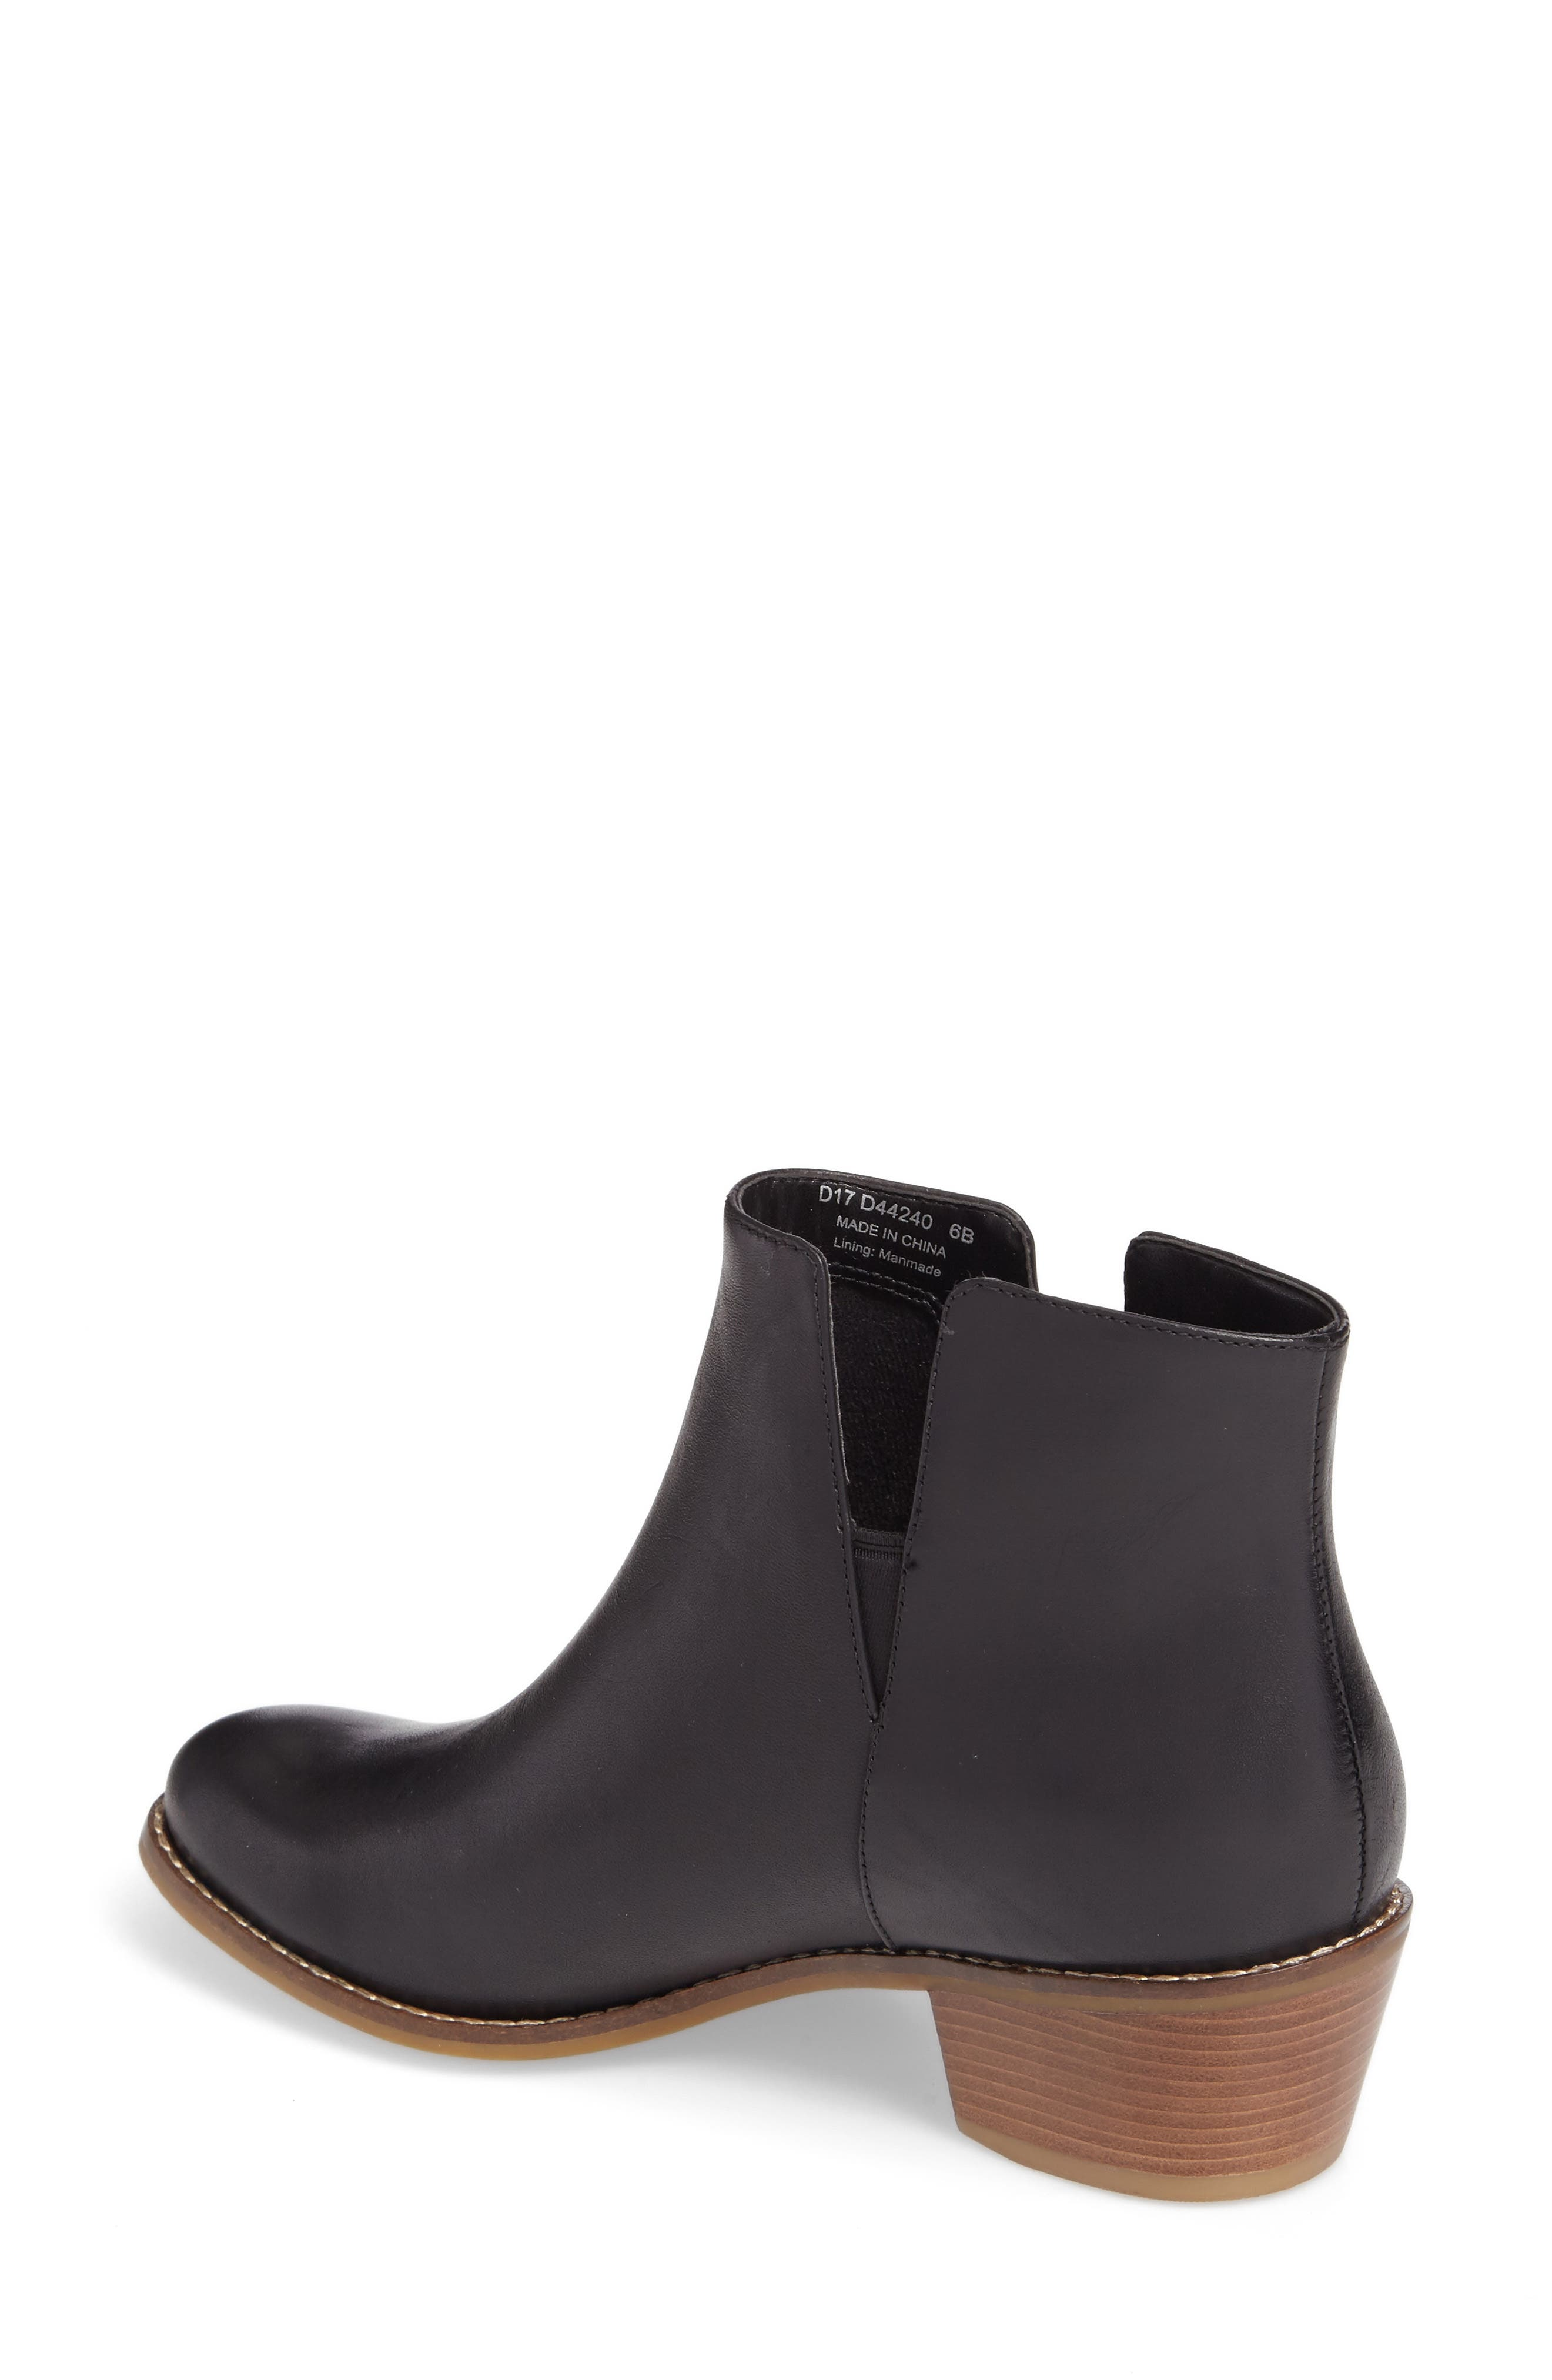 'Abbot' Chelsea Boot,                             Alternate thumbnail 18, color,